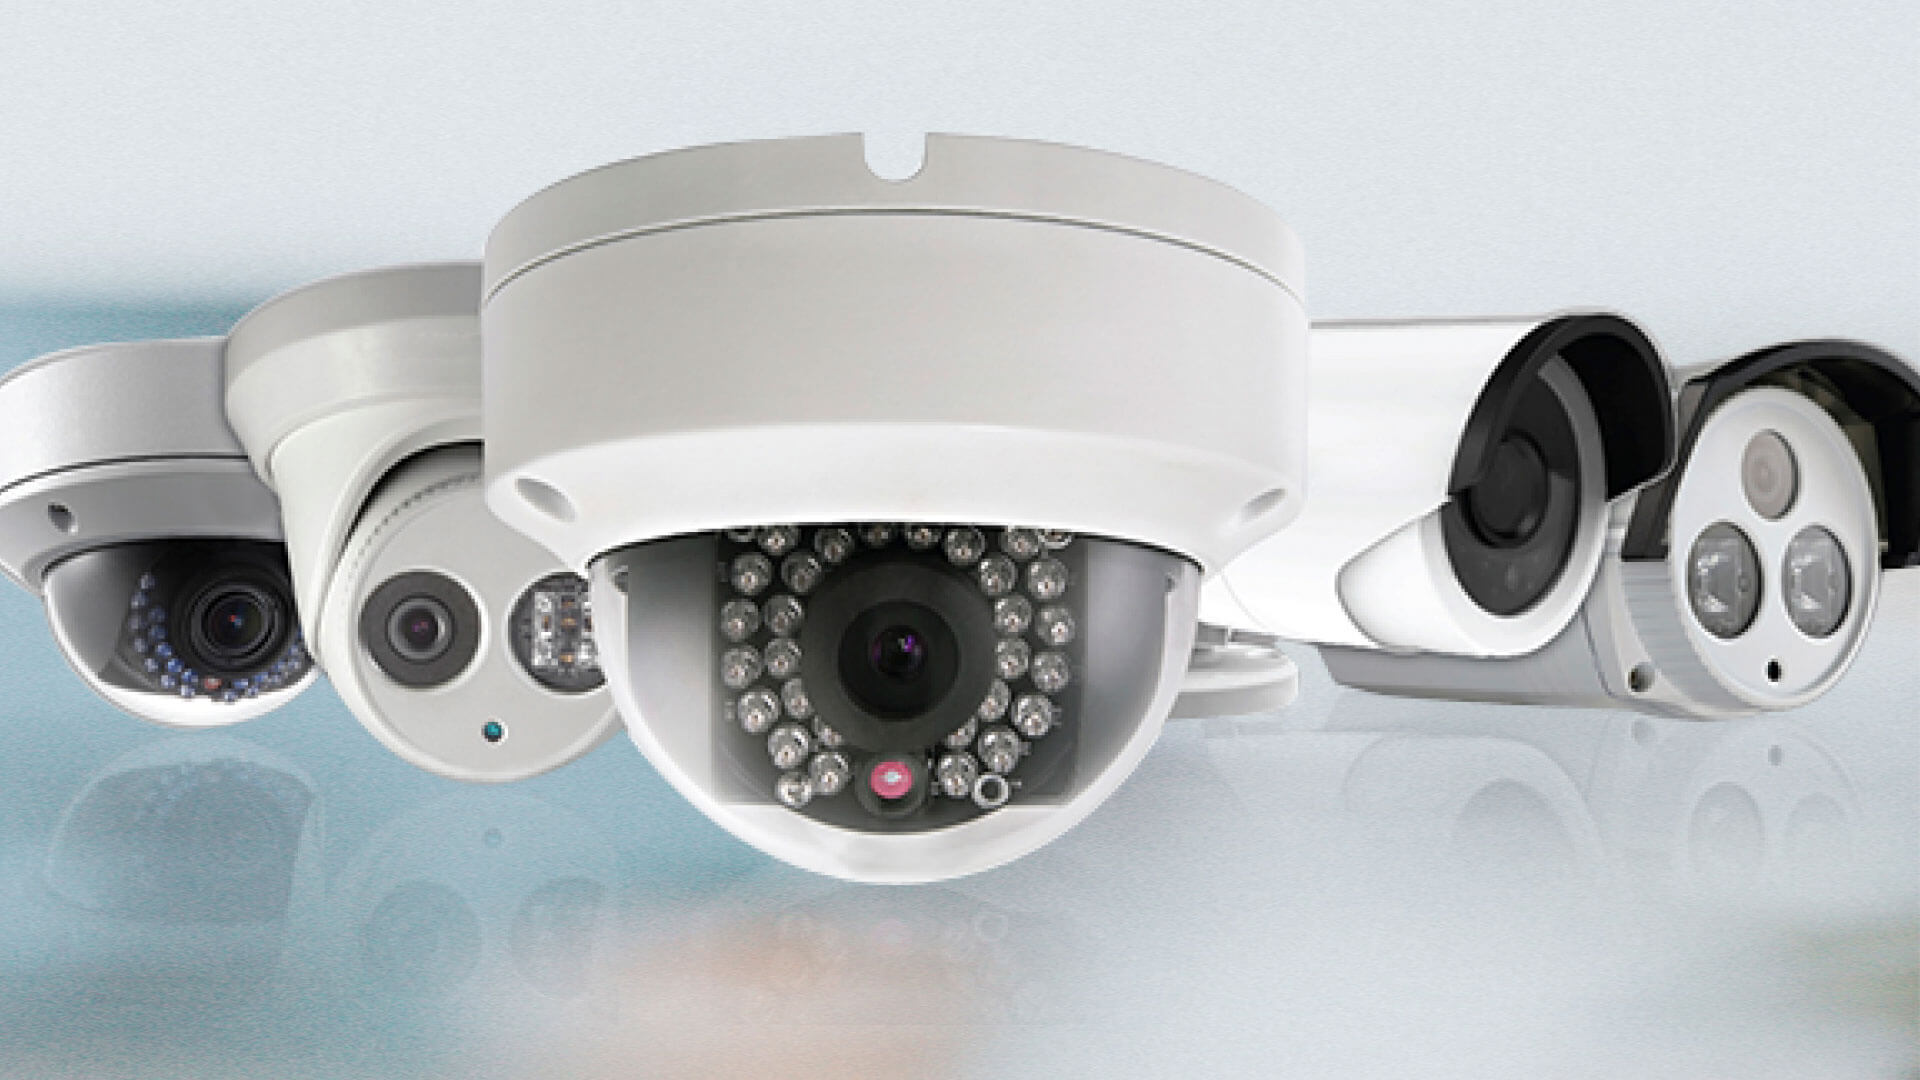 cctv-to-protect-your-home-or-business